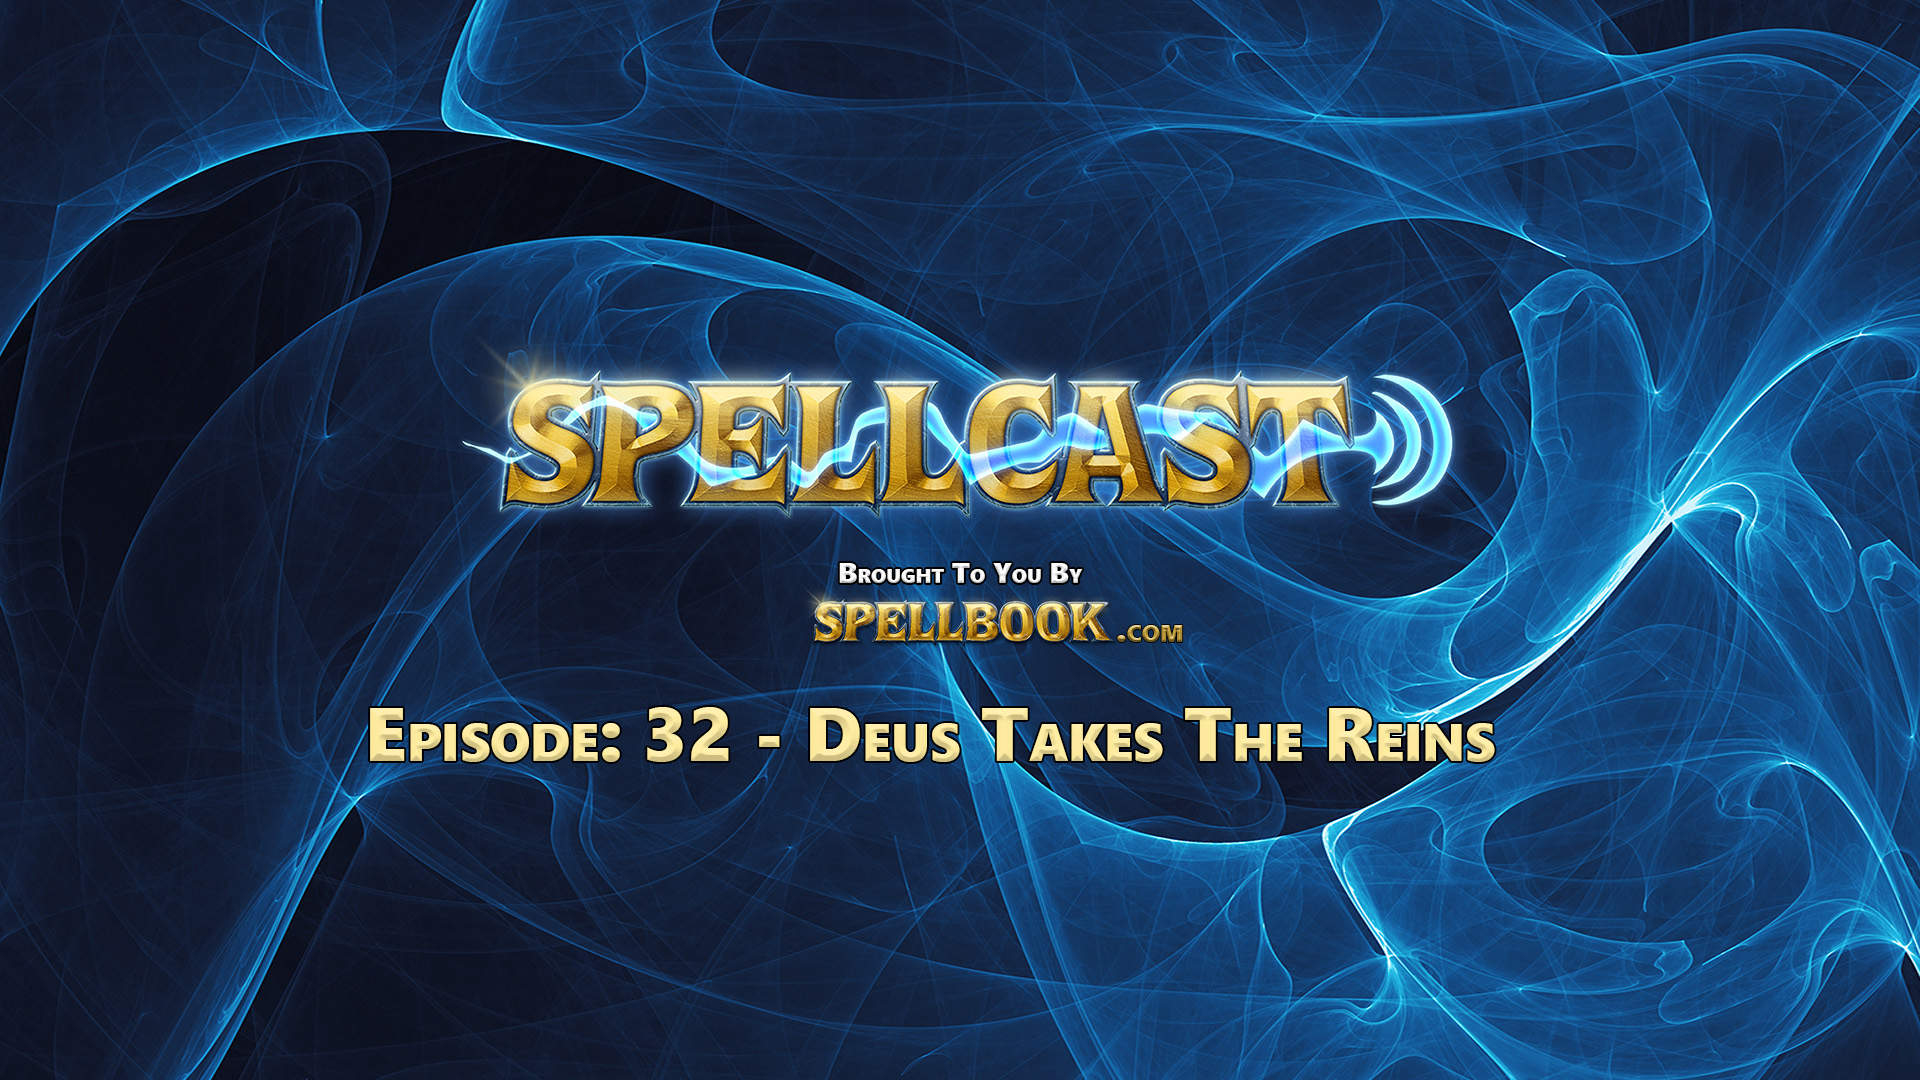 Spellcast Episode: 32 - Deus Takes The Reins